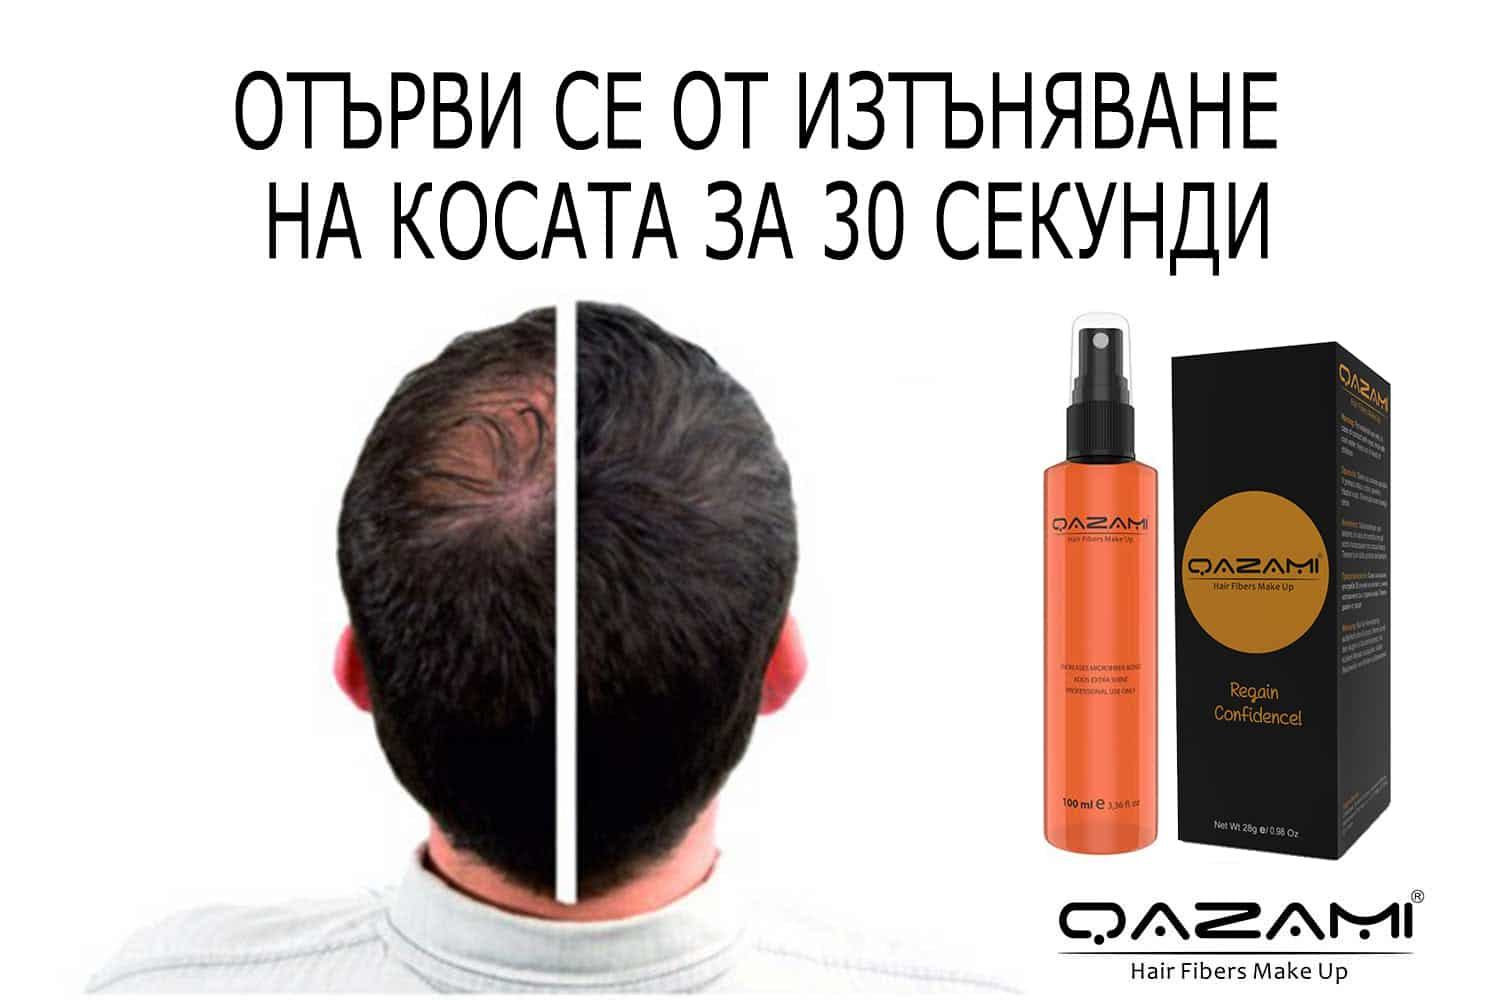 Get rid of thinned hair in 30 seconds